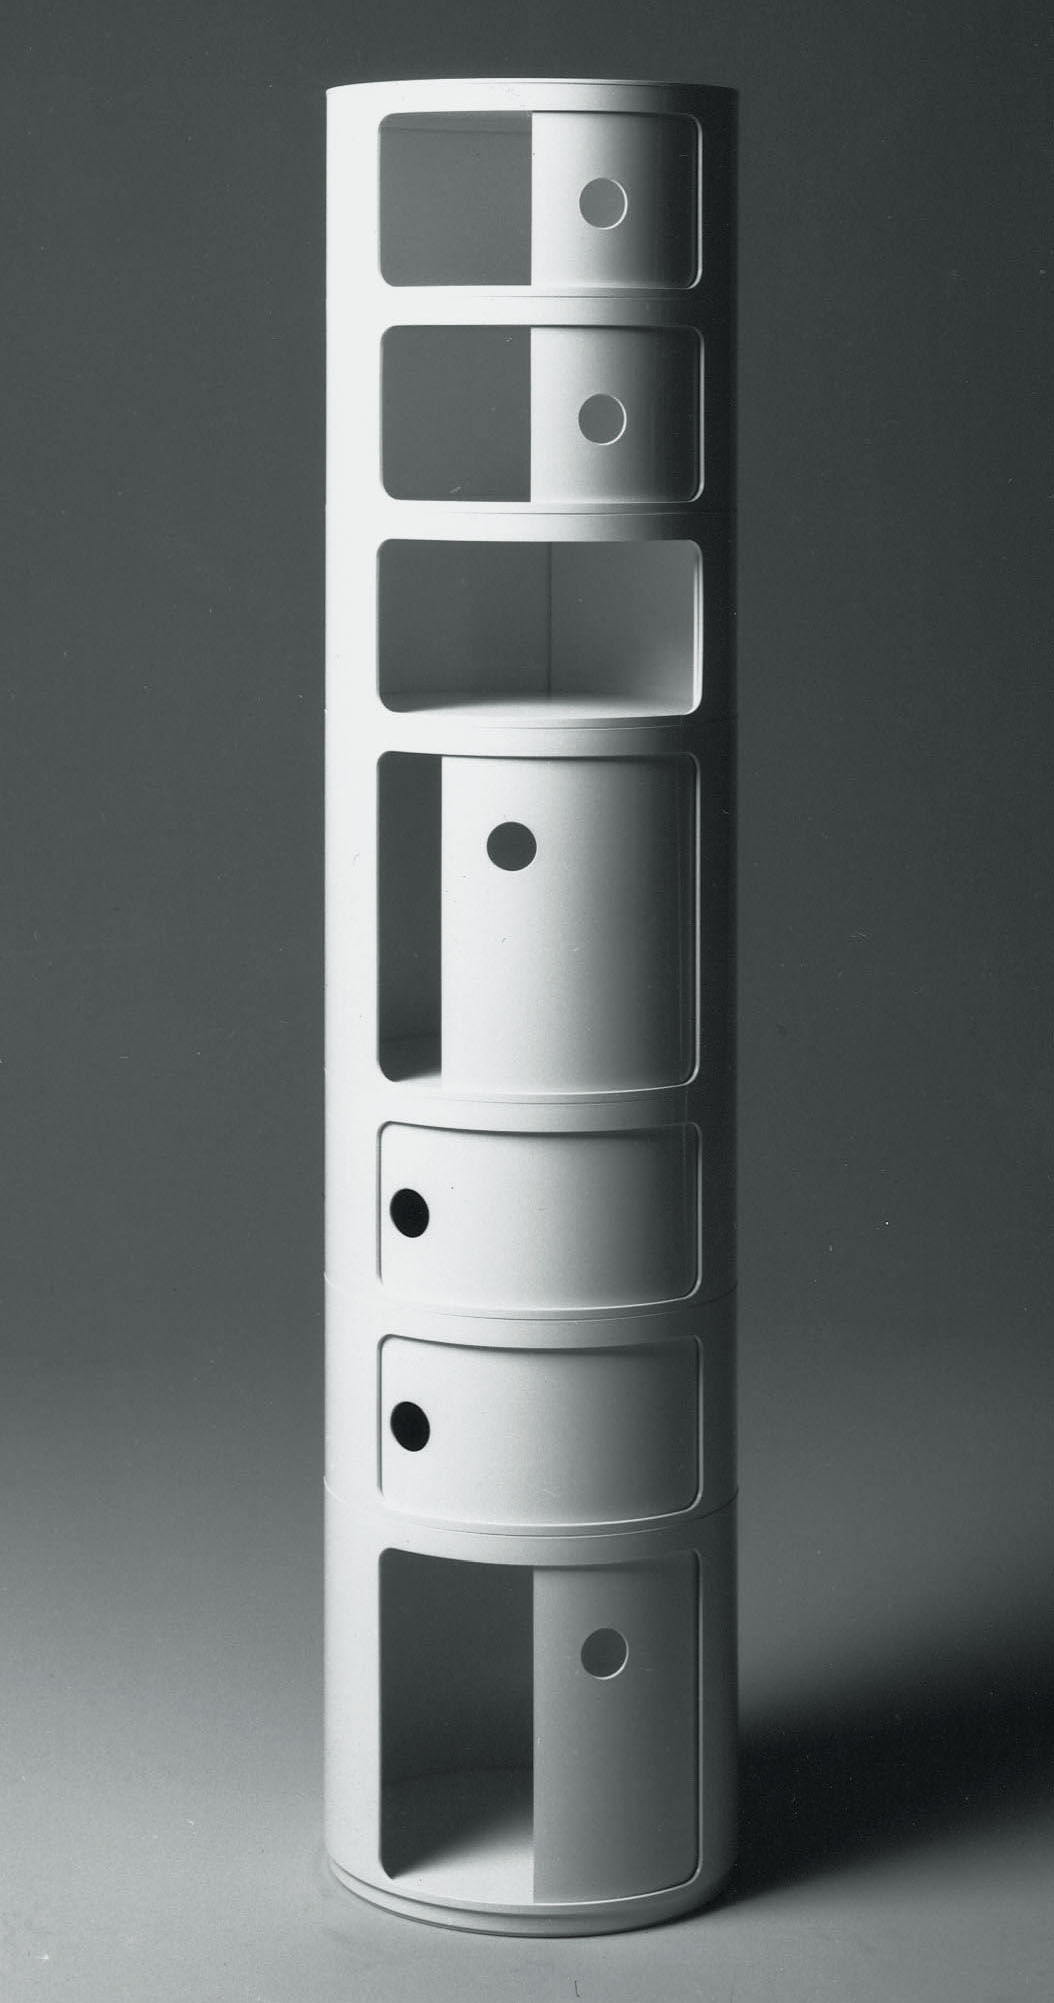 Componibili Kartell Componibili Storage - 2 Elements White By Kartell